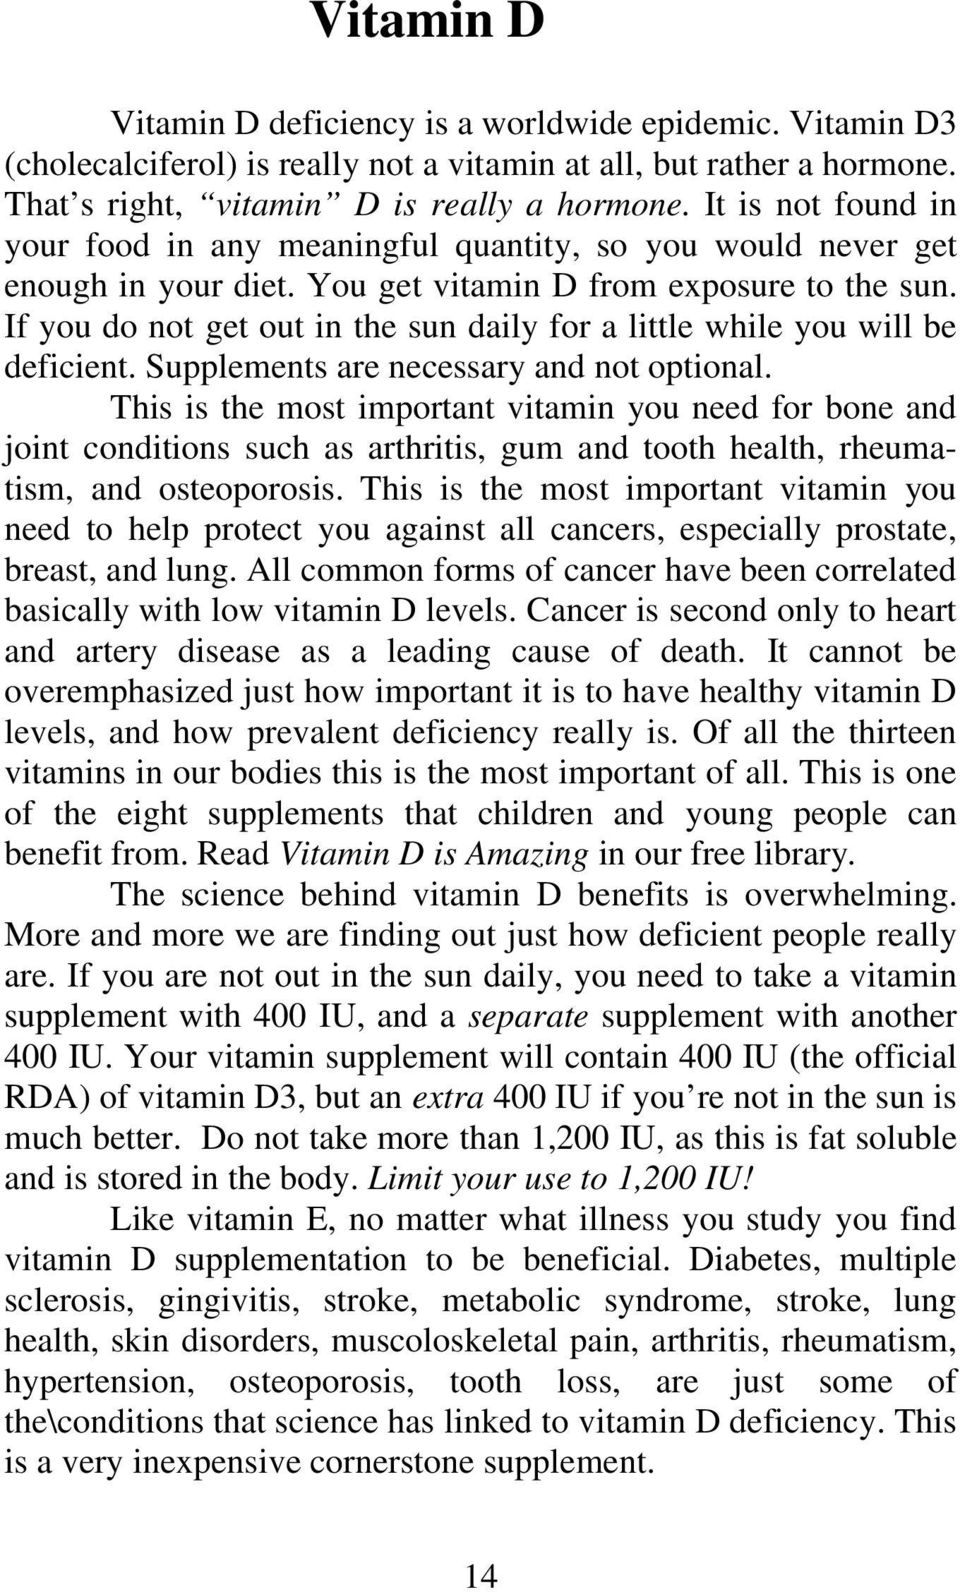 If you do not get out in the sun daily for a little while you will be deficient. Supplements are necessary and not optional.